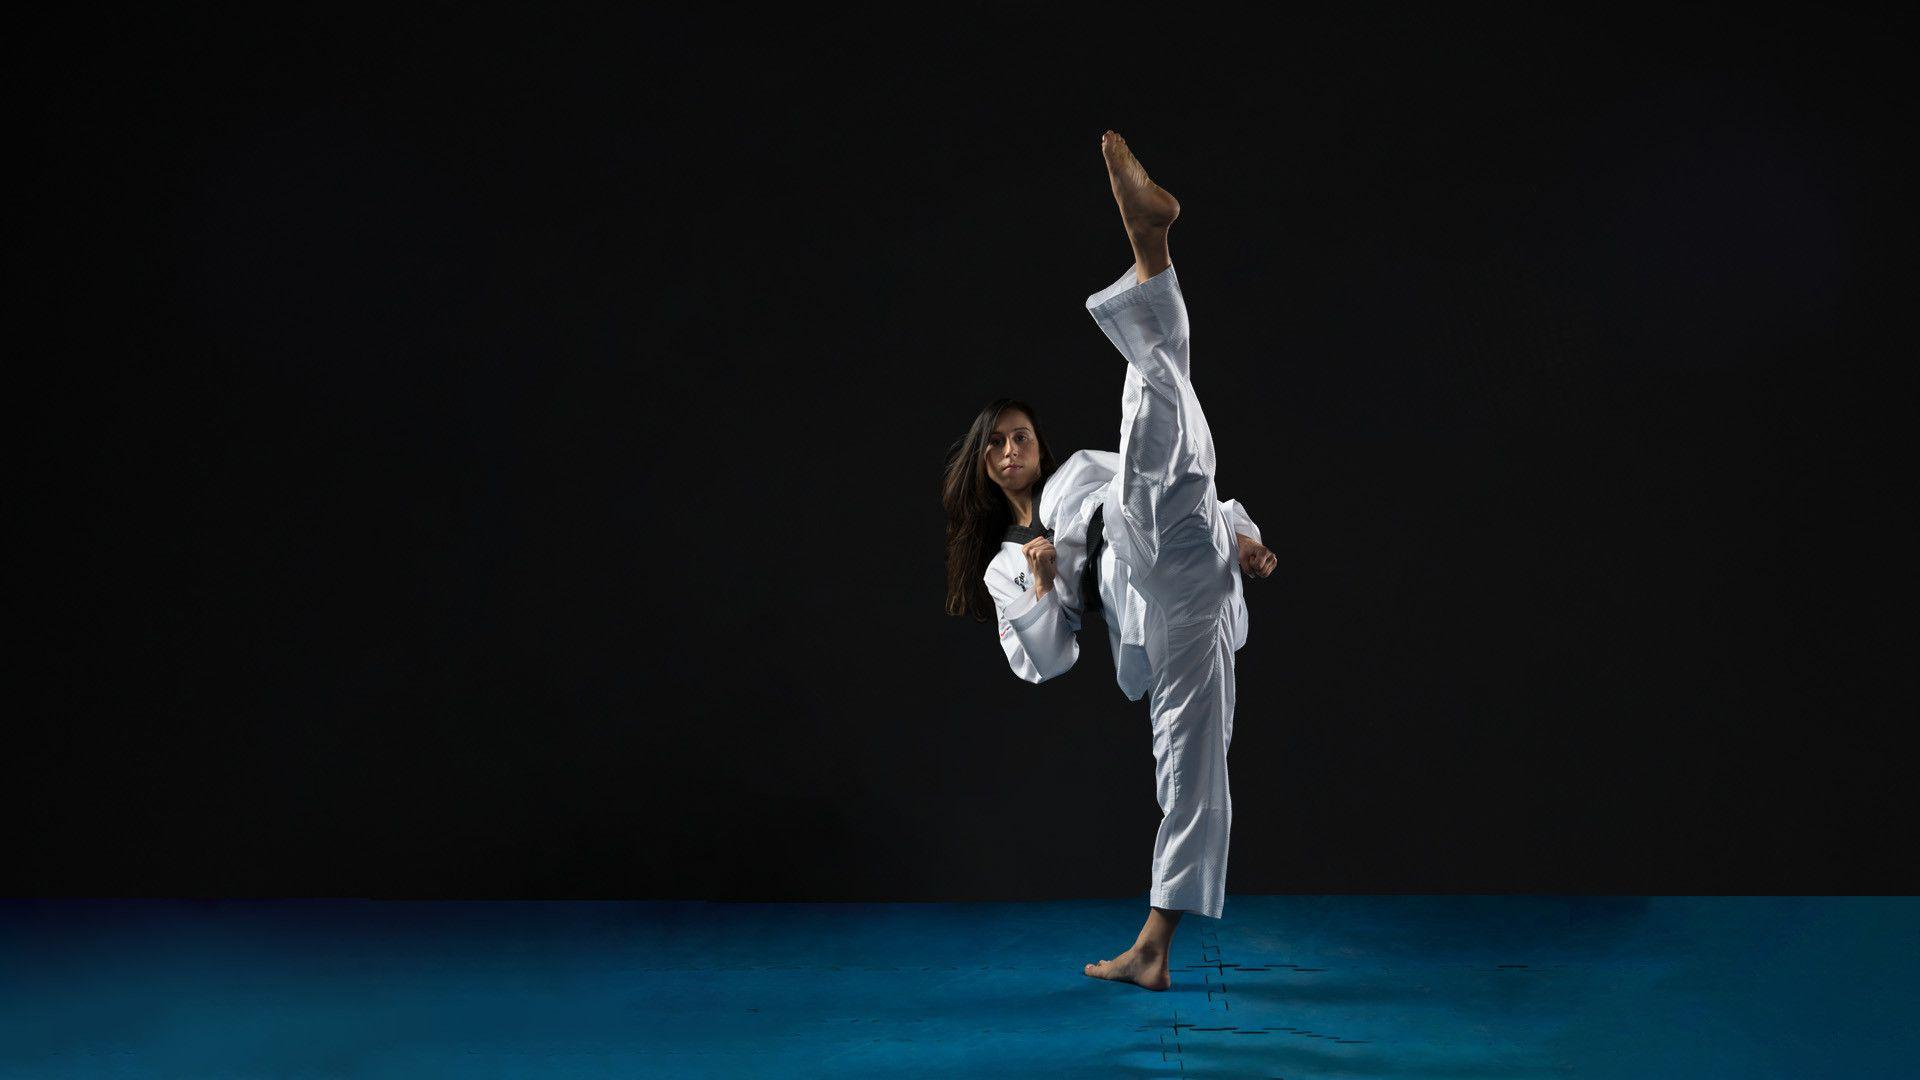 itf taekwondo wallpapers wallpaper cave